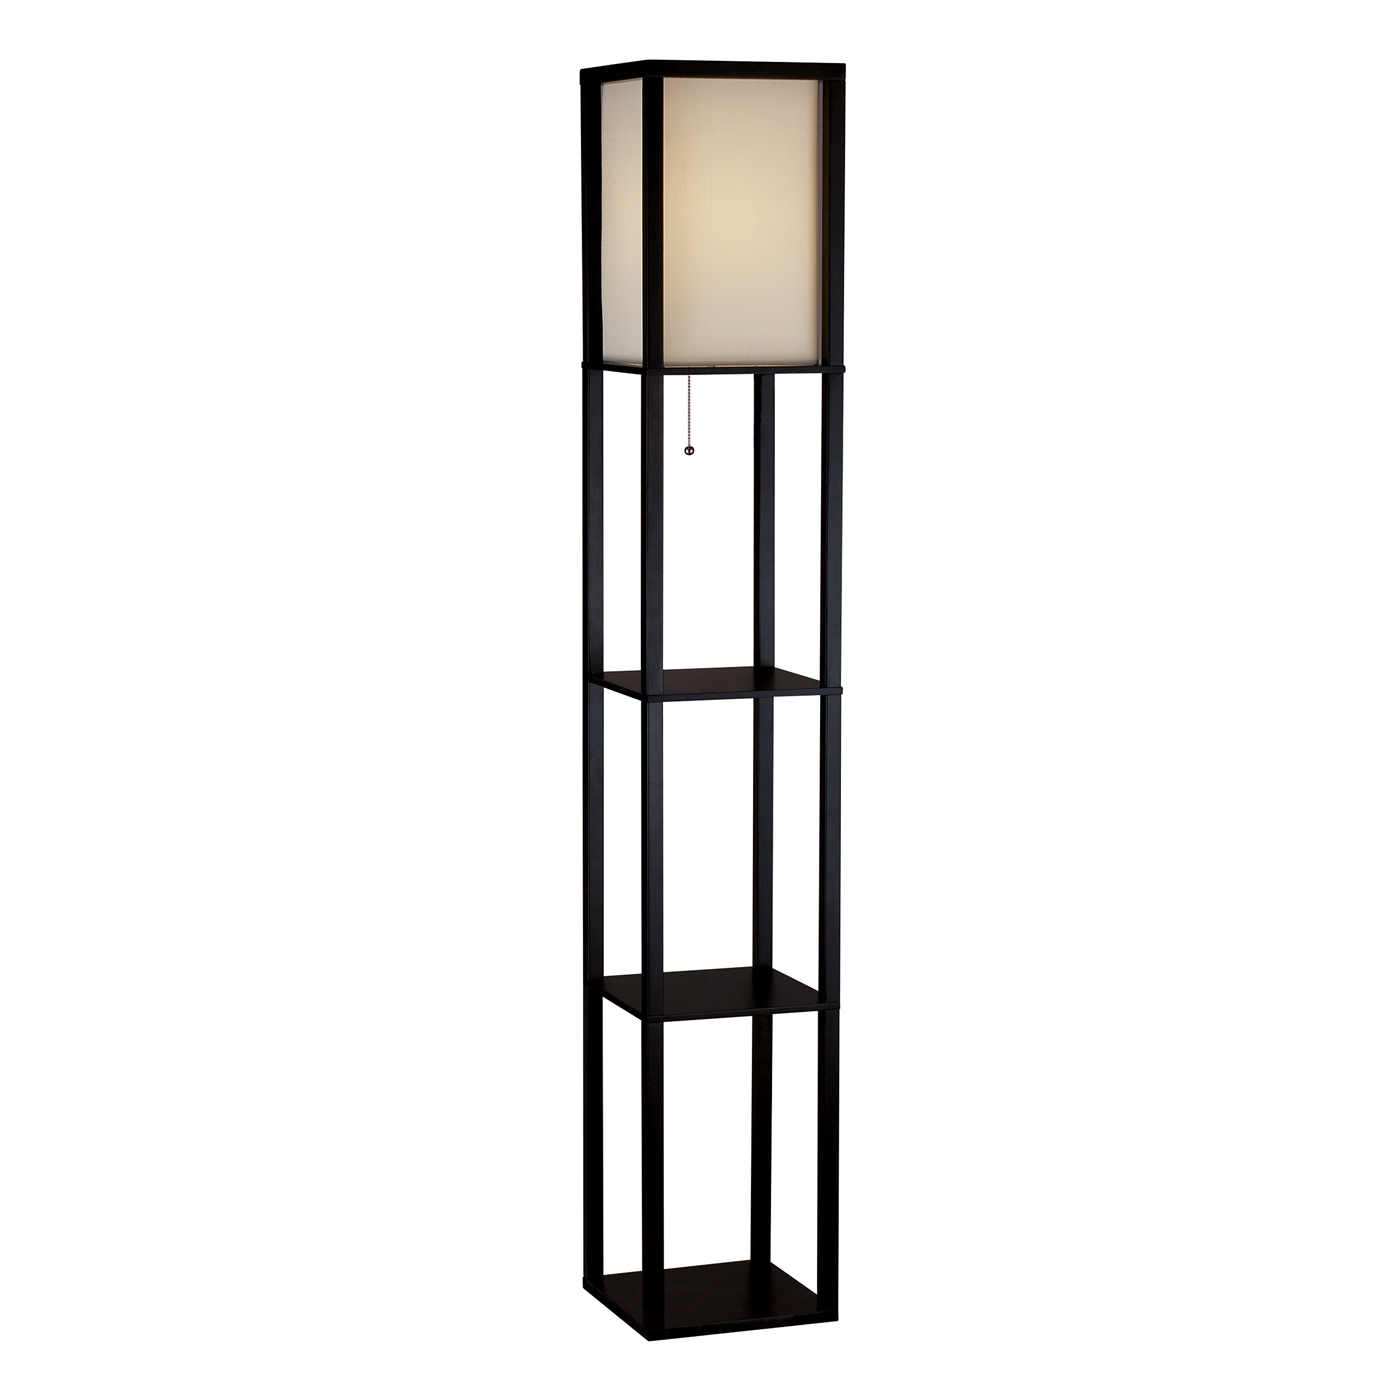 Adesso Lighting 3138-01 Wright Etagere Floor Lamp by Adesso, Inc.